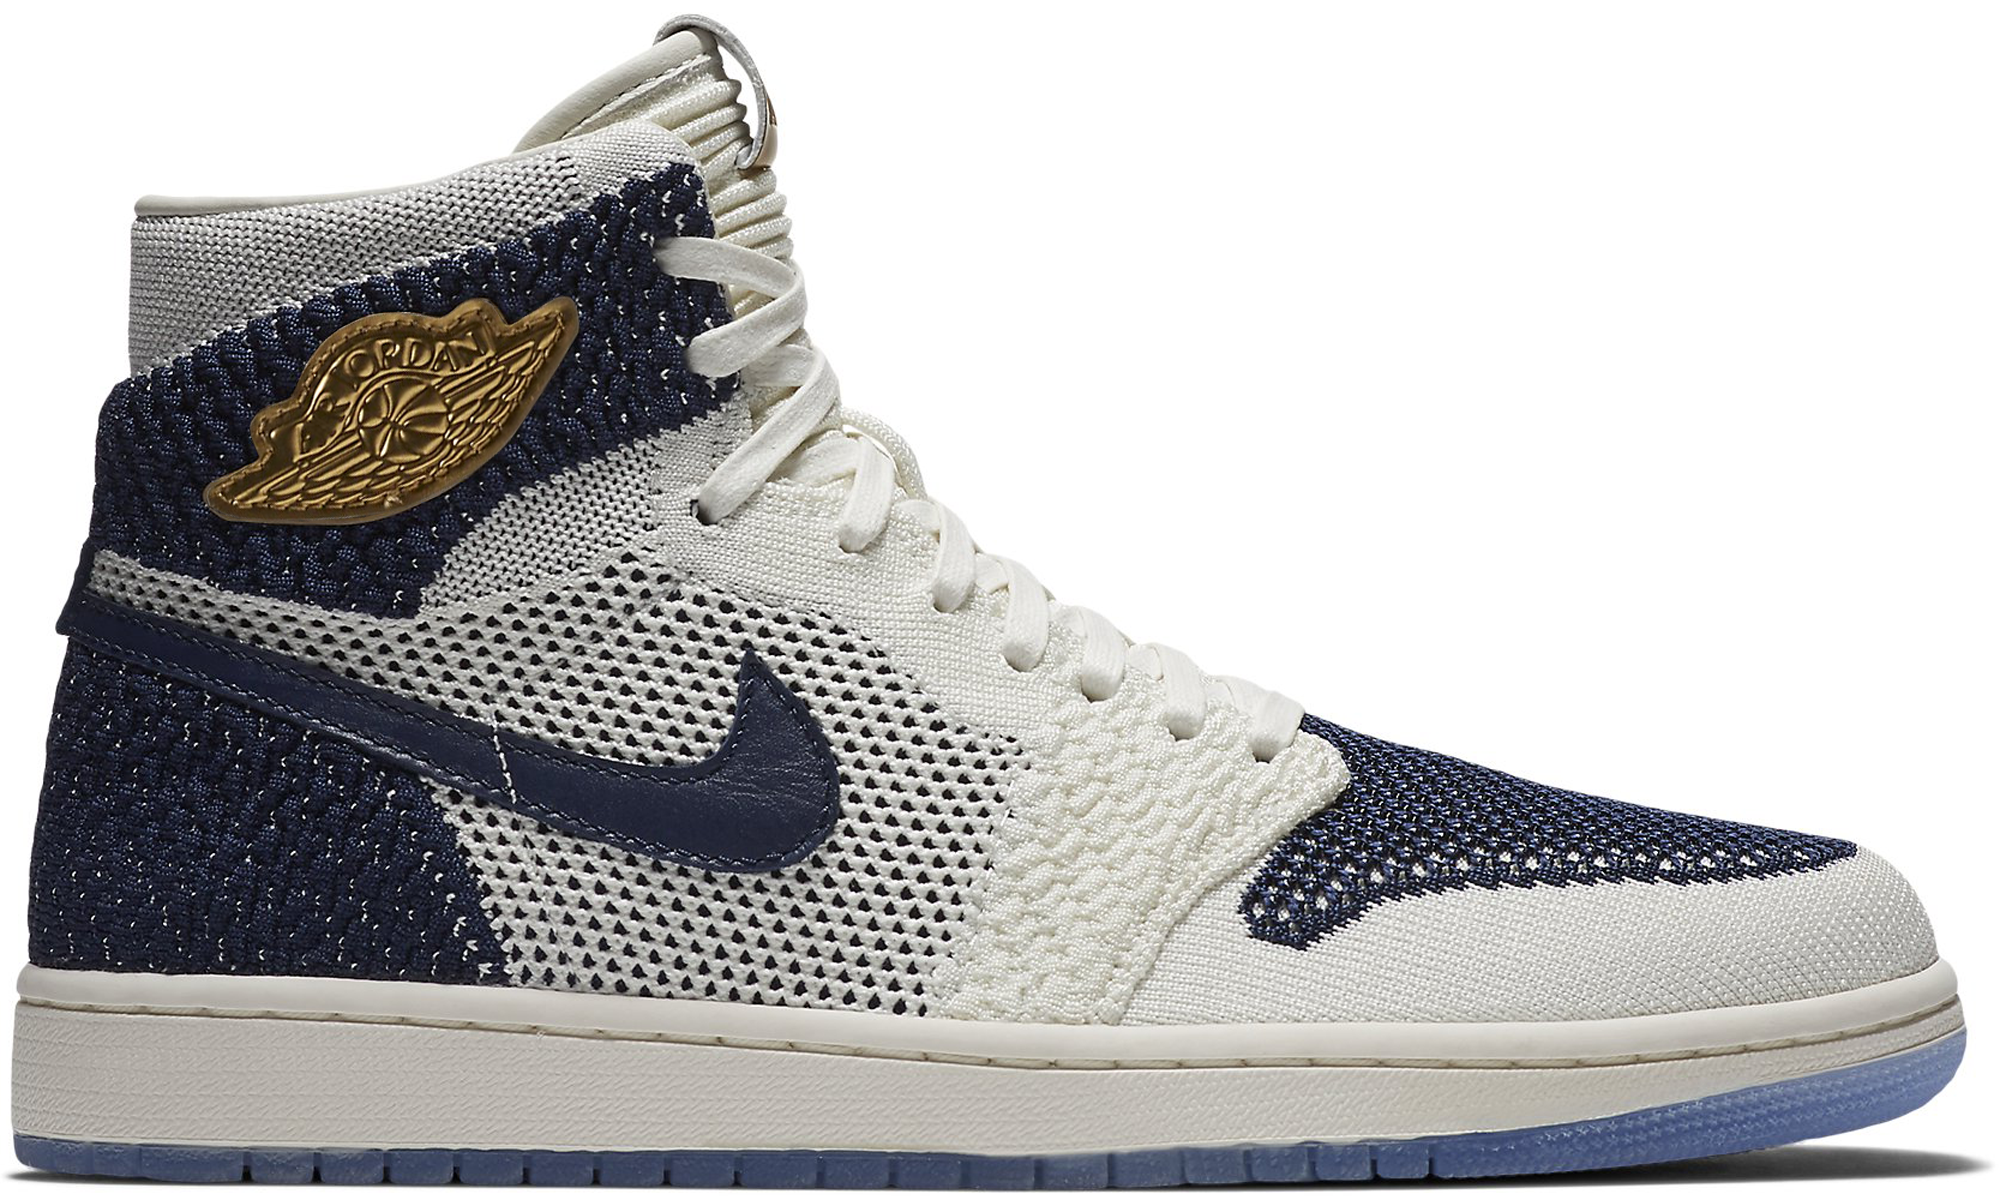 Jordan 1 Retro High Flyknit Derek Jeter RE2PECT